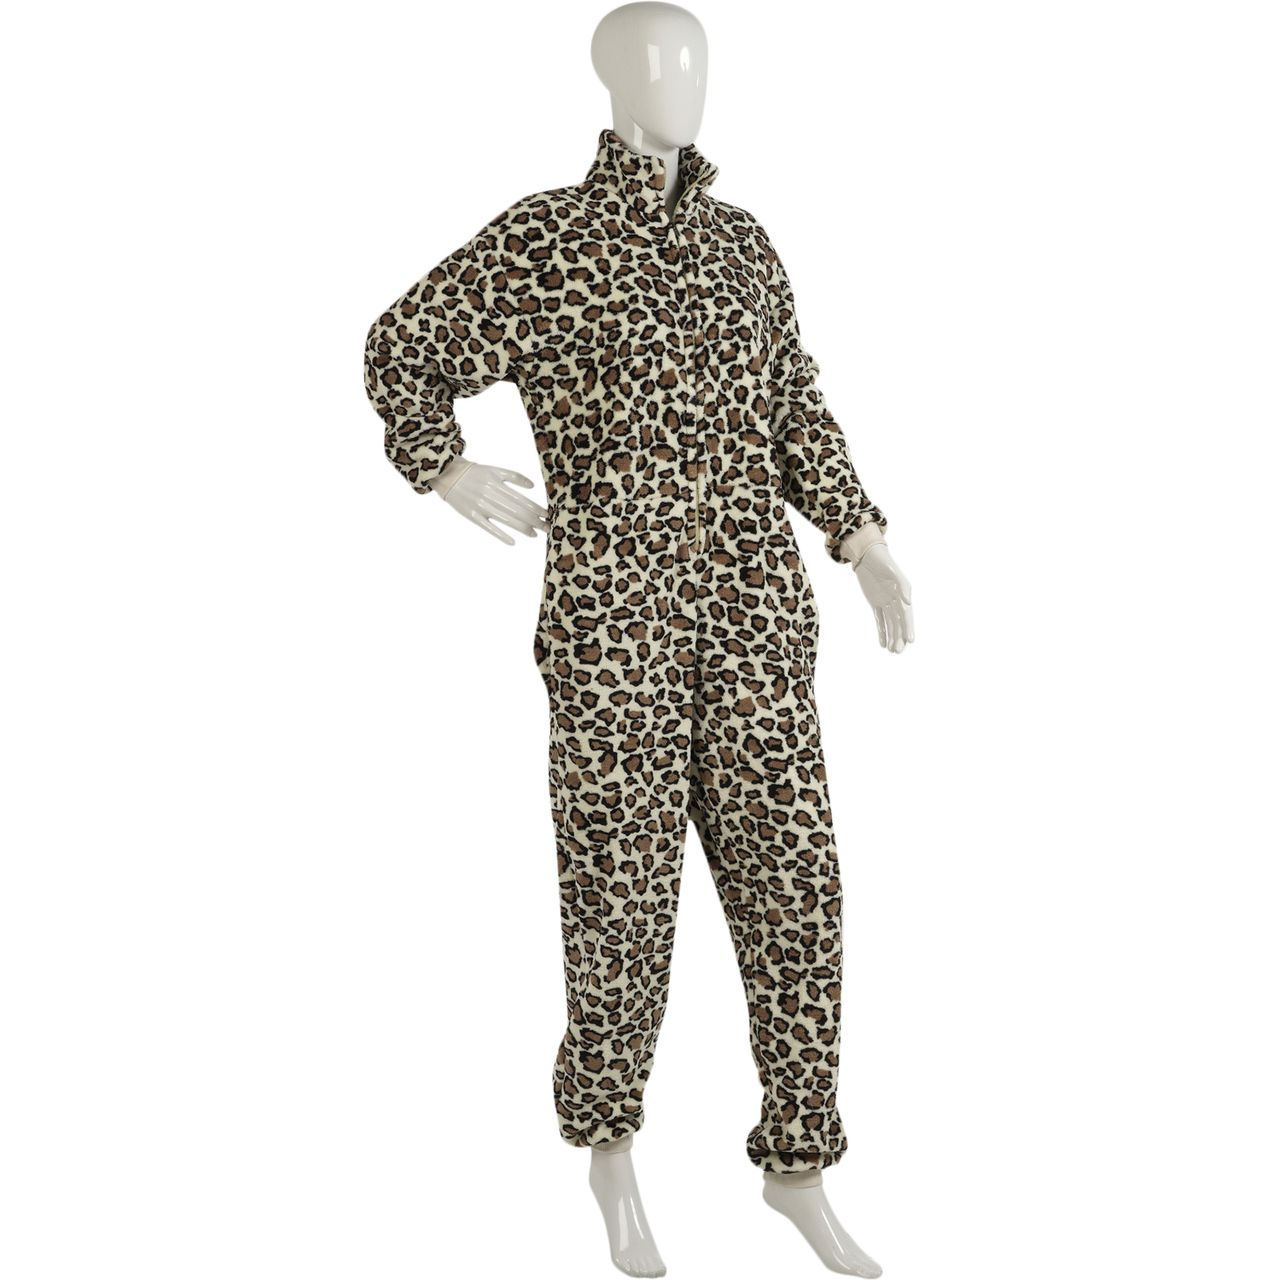 These ladies super soft fleece onesies are a leopard print design throughout and would make a lovely addition to your nightwear this season.